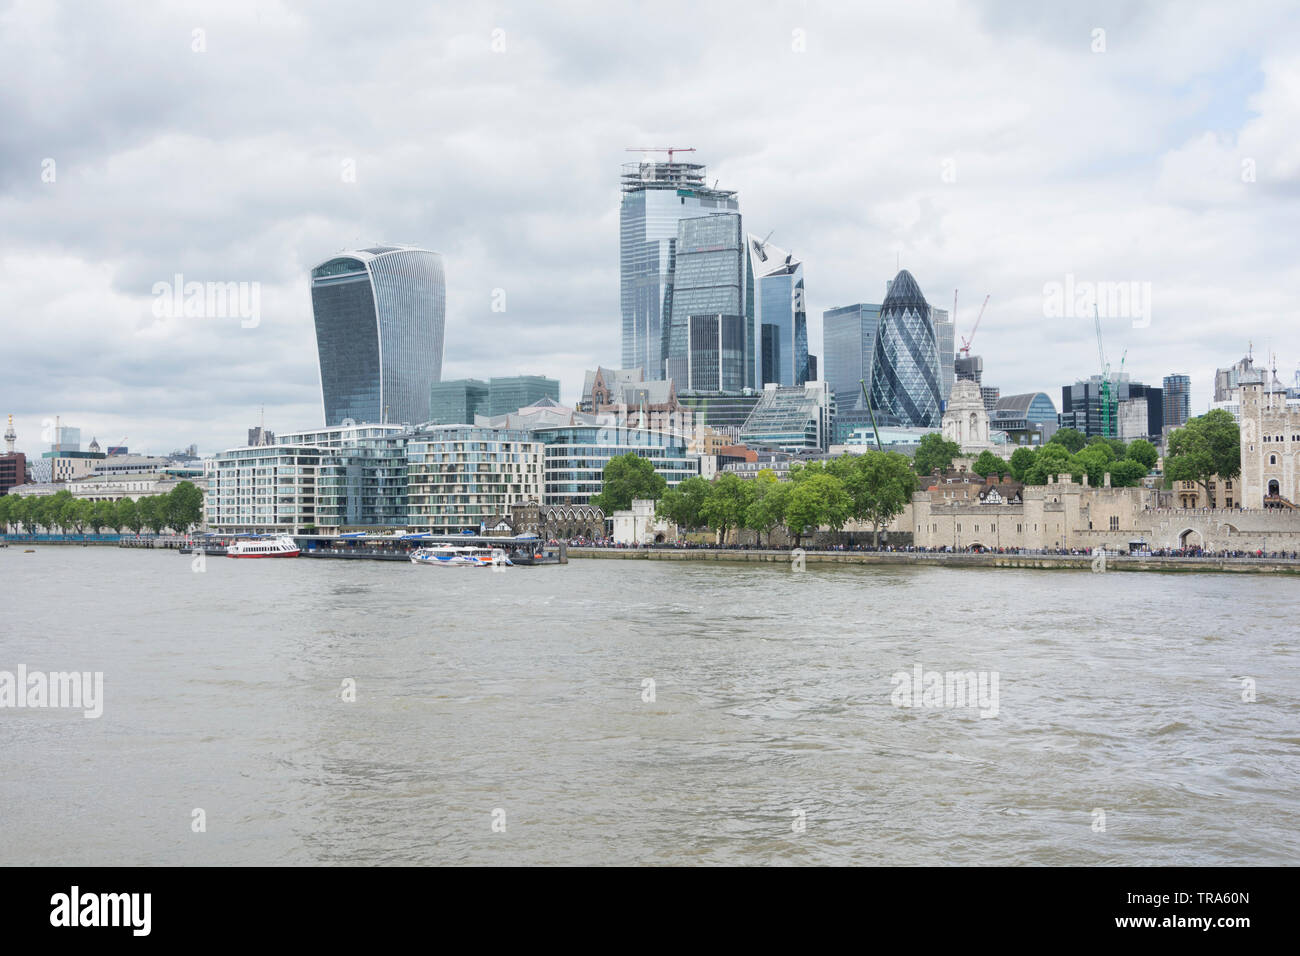 The City of London's ever-changing skyline as new skyscrapers are added to the mix - Stock Image